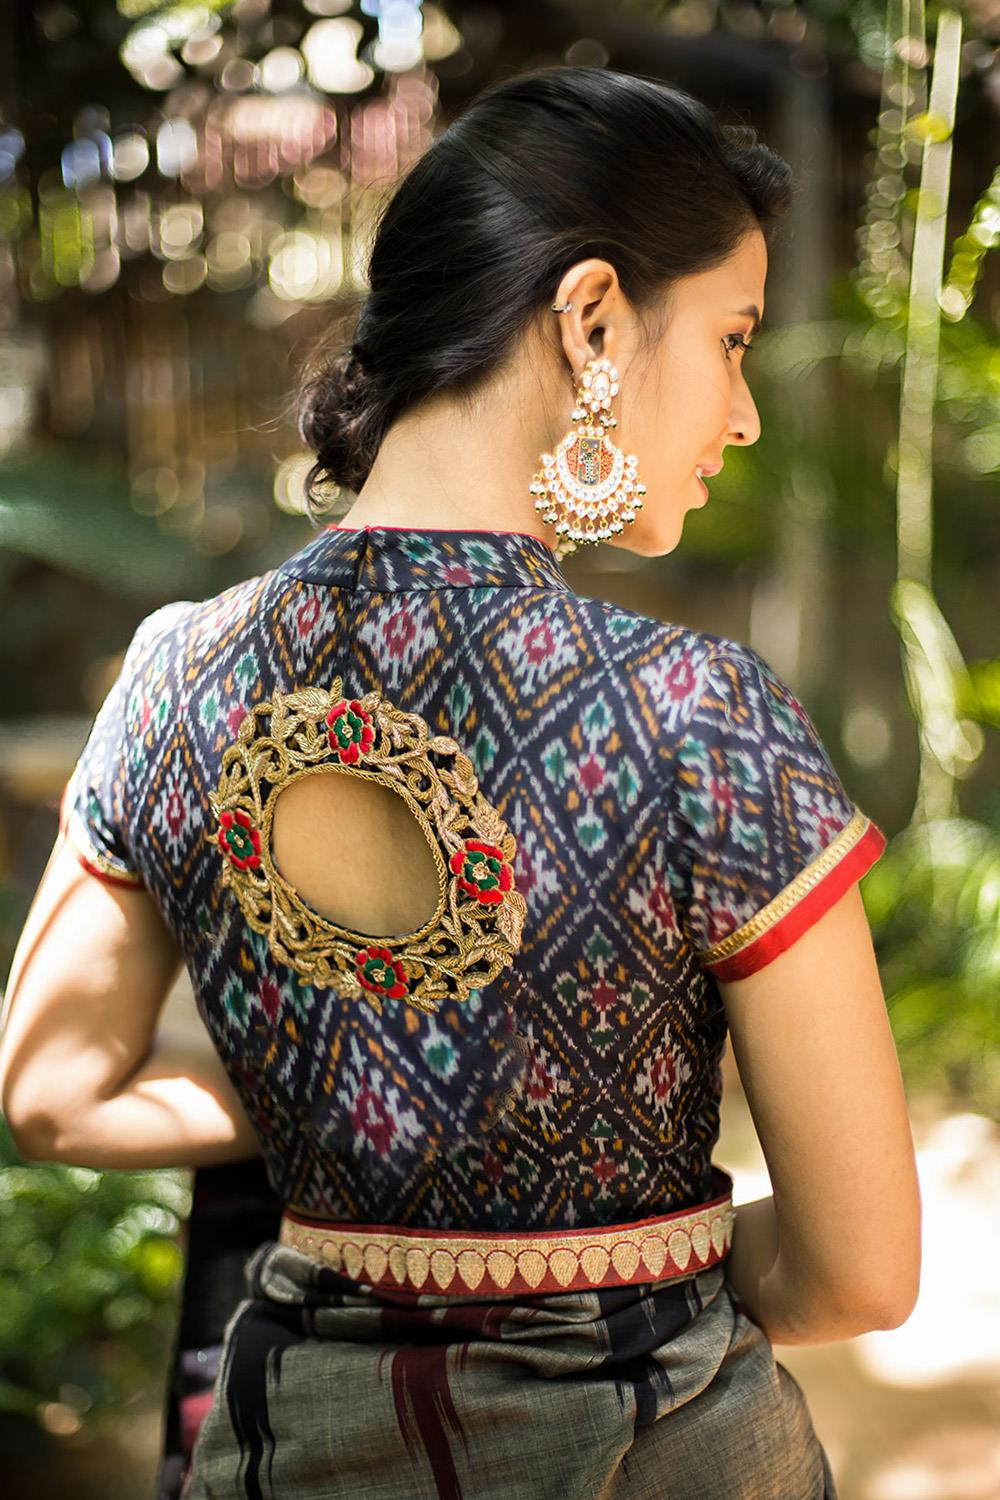 957bf8a76bbfe8 Simple collar neck blouse with gold embroidery on the back. If you are  still confused about selecting a blouse design for your saree